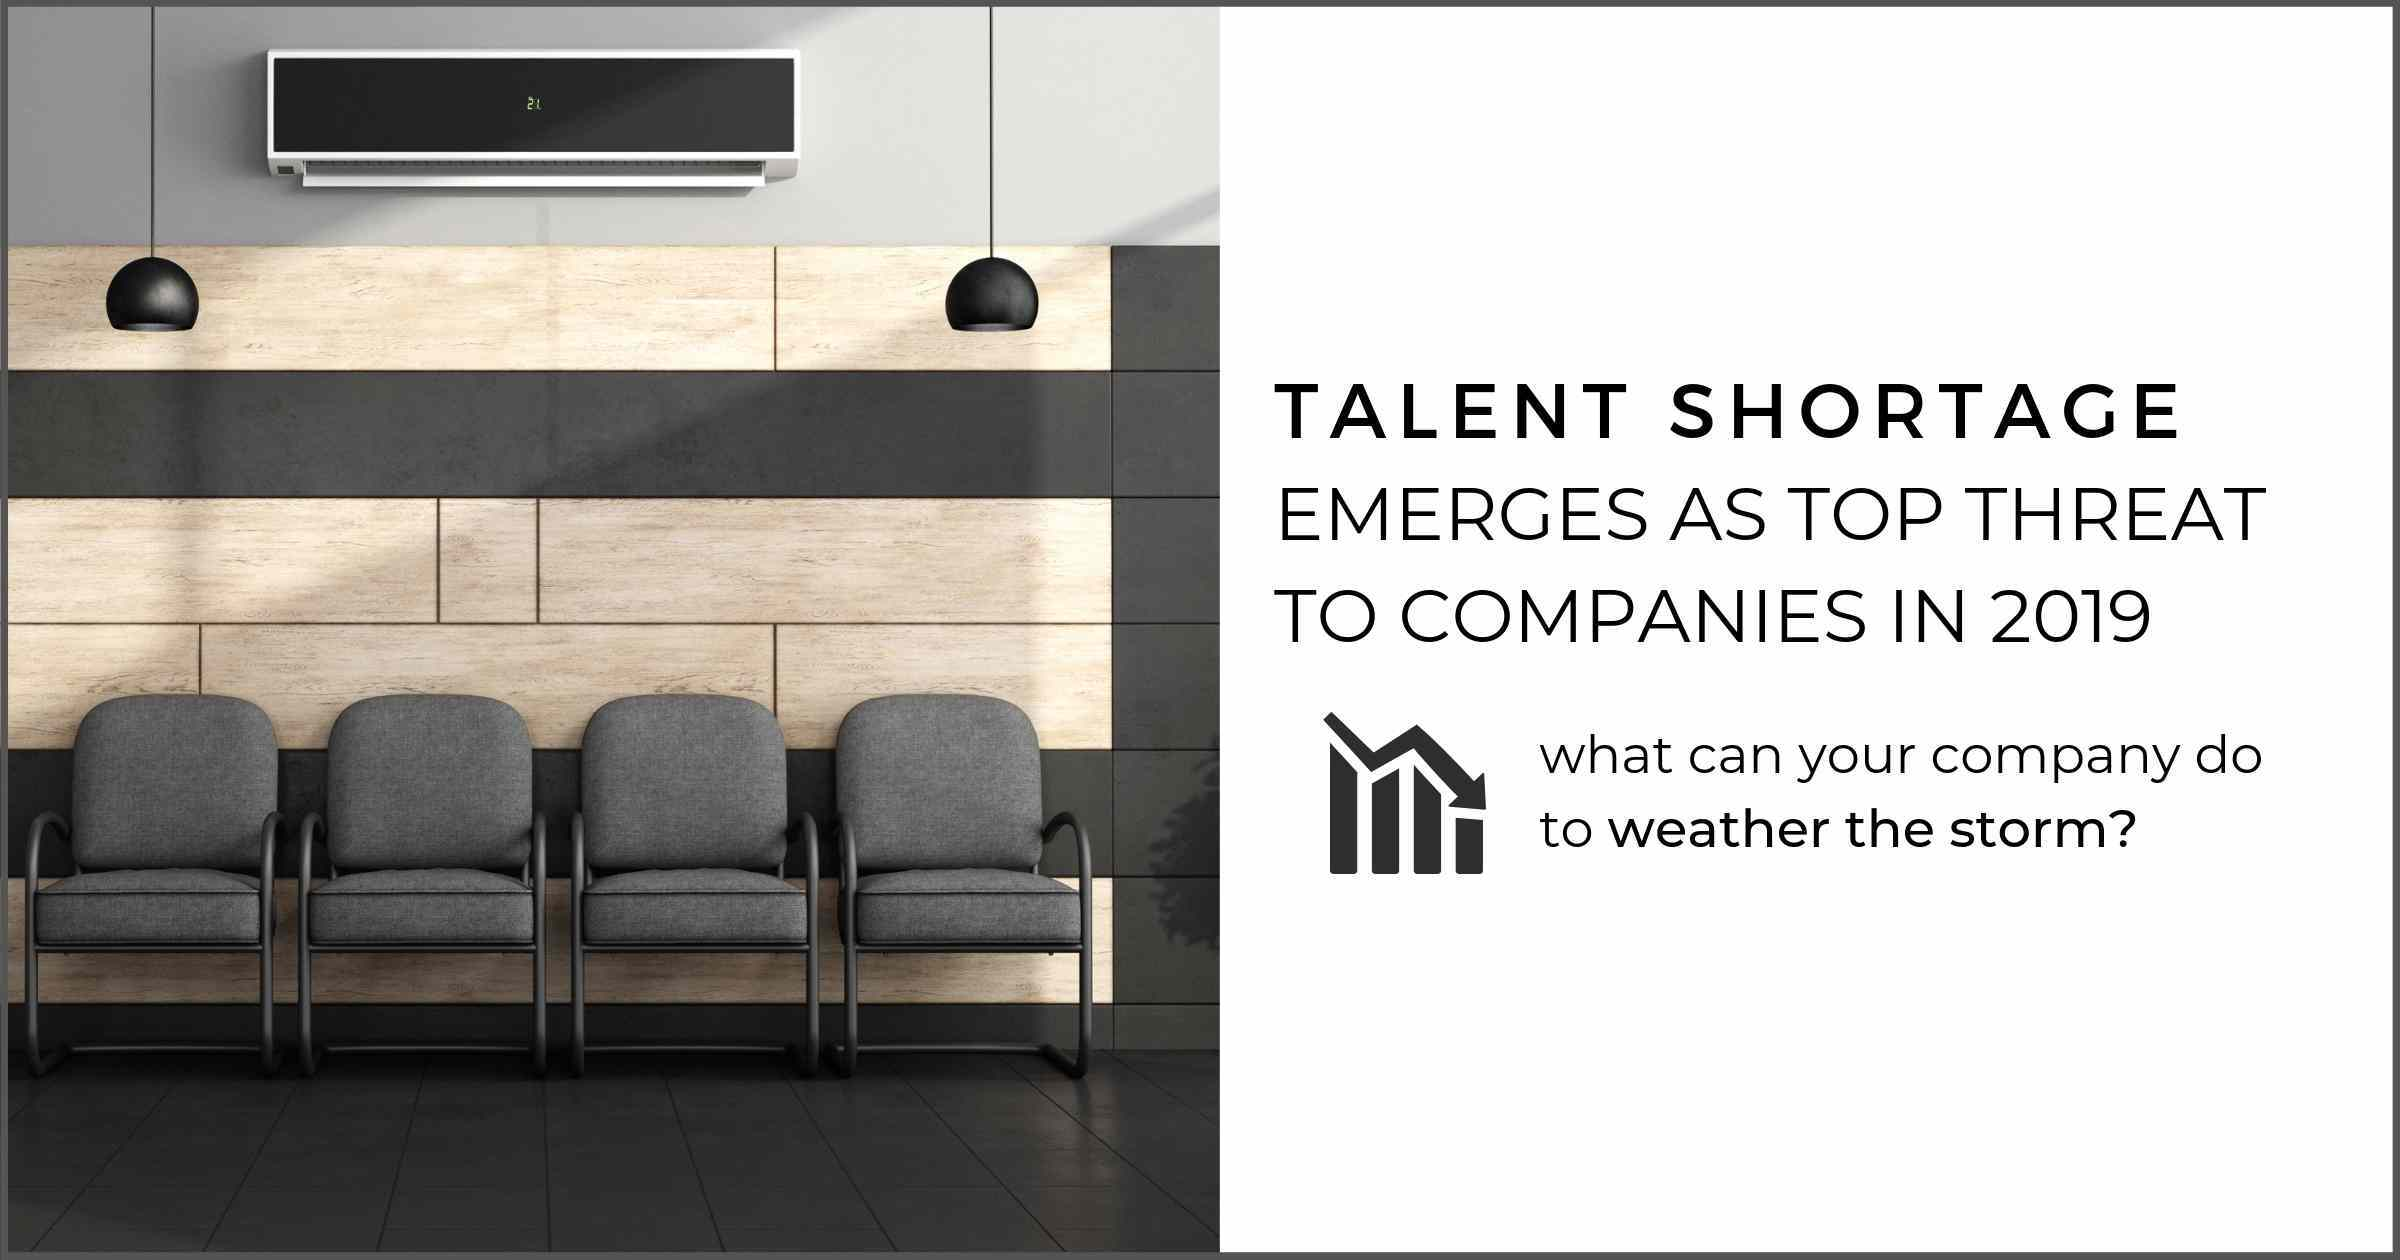 Talent Shortage Emerging as Top Threat to Companies